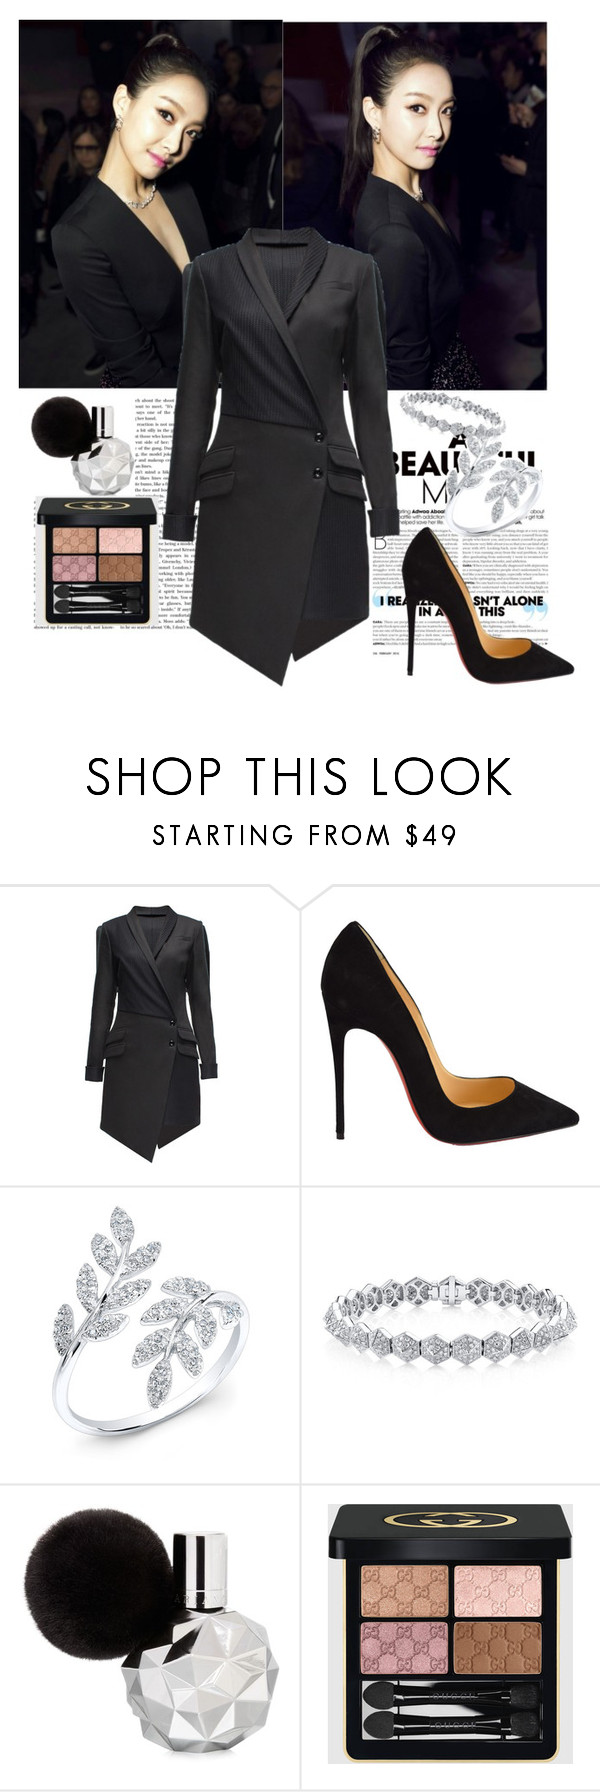 """Untitled #35"" by janjanzira ❤ liked on Polyvore featuring Lattori, Christian Louboutin, Anne Sisteron and Gucci"